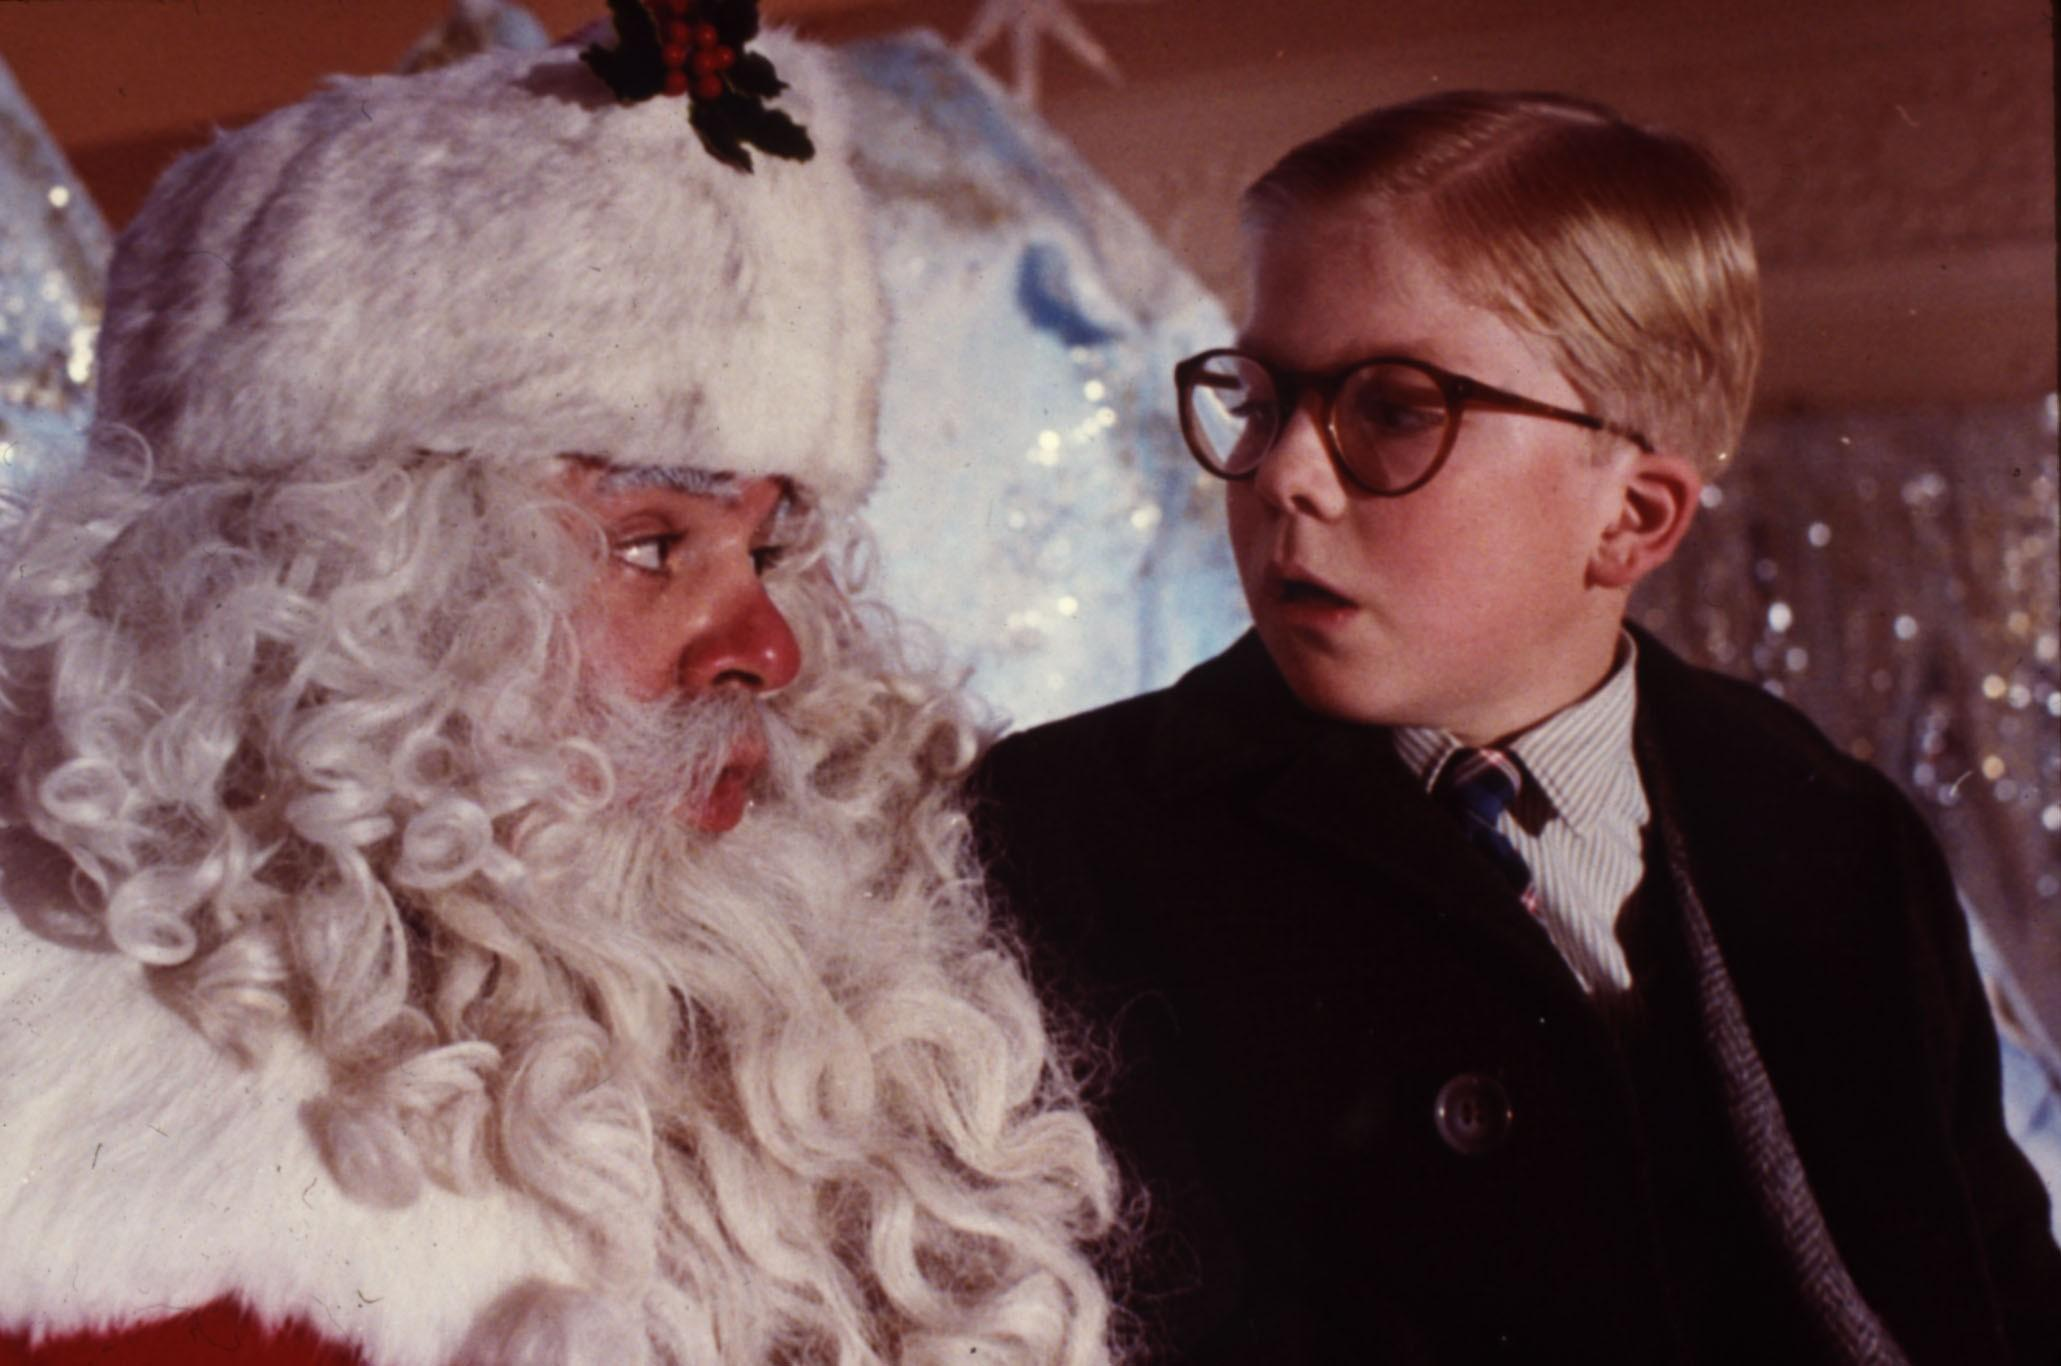 peter billingsley starred in jean shepherds a christmas story in 1983 - Where Was The Christmas Story Filmed